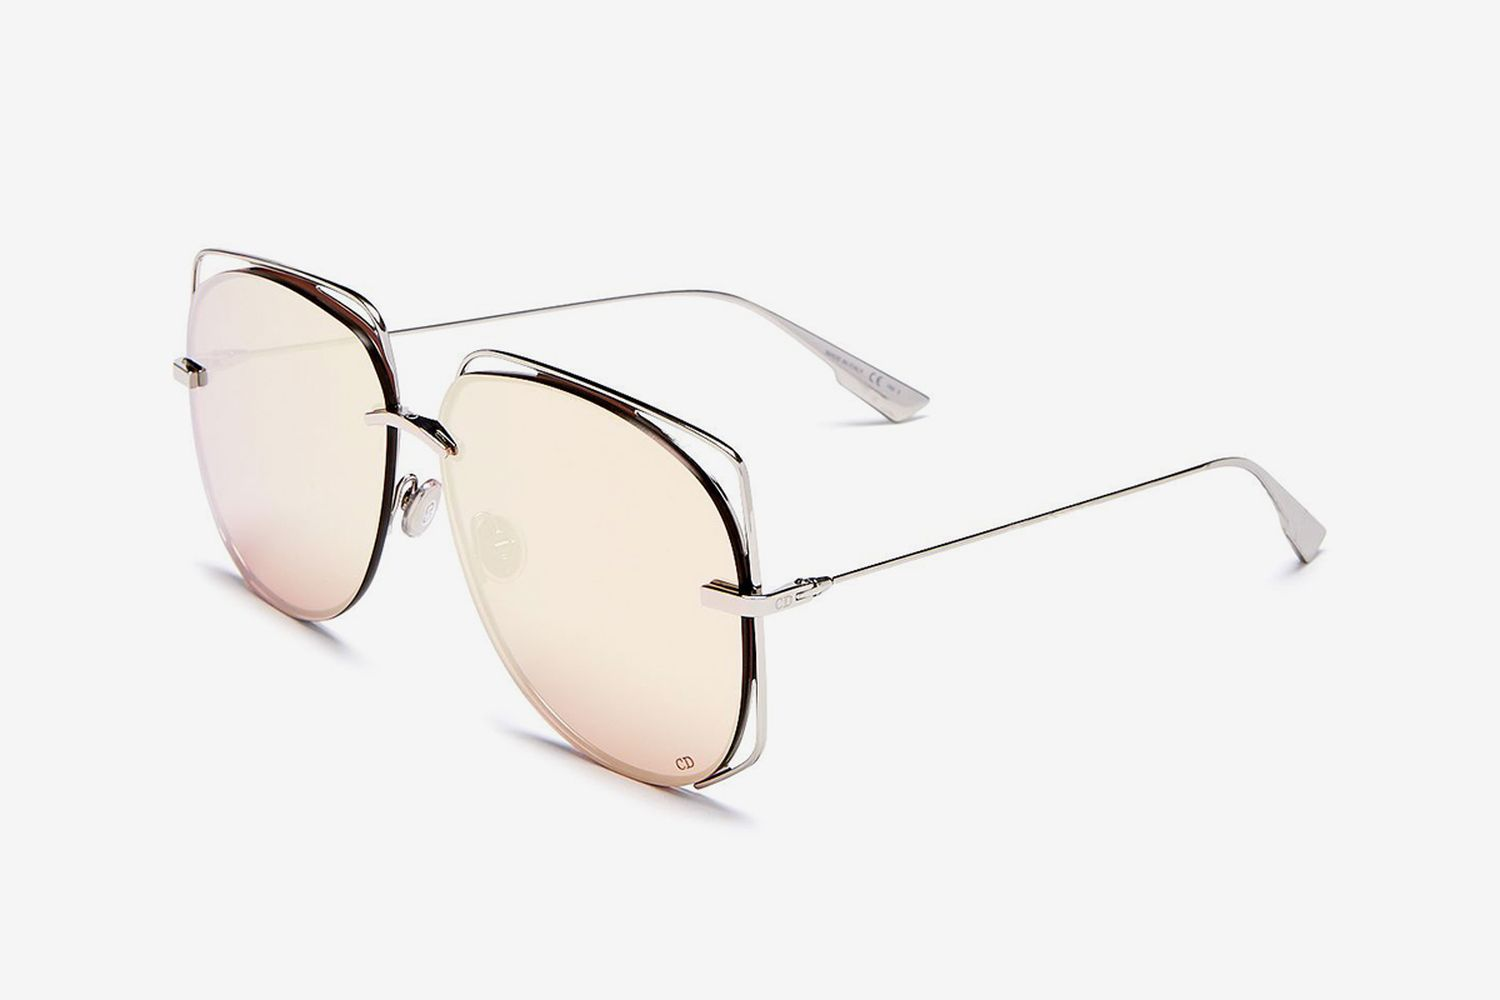 Dior Stellaire 6 Aviator Sunglasses